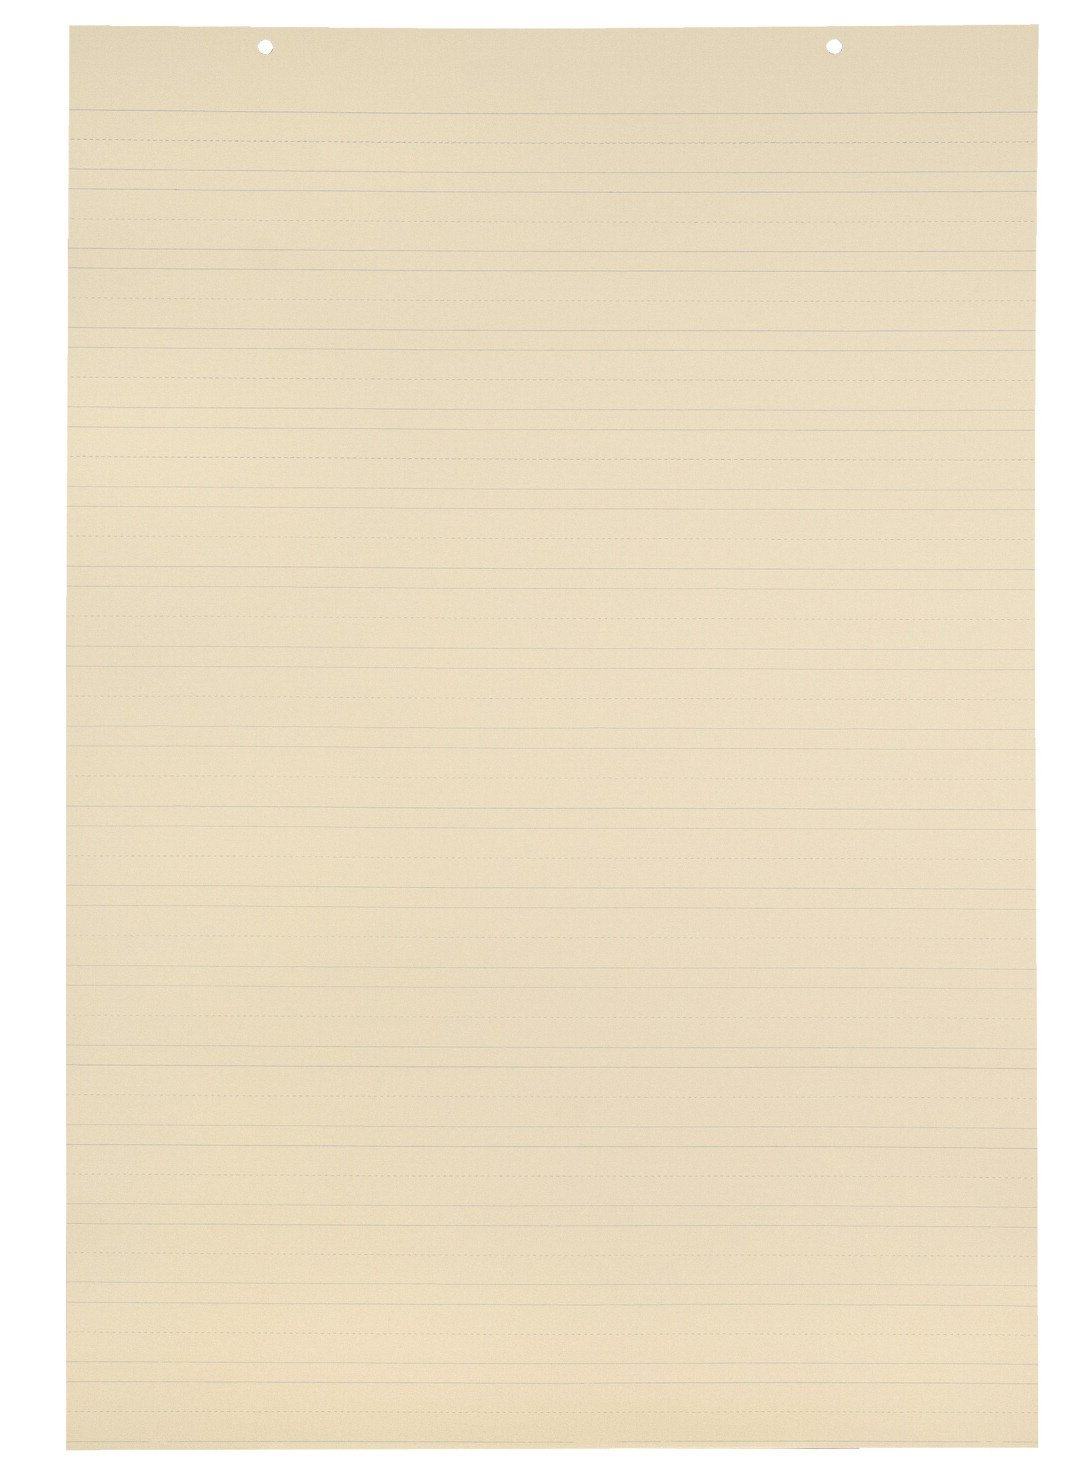 School Smart Jumbo Manila Tag Ruled Chart Paper, 36 x 24 Inches, Pack of 100 by School Smart